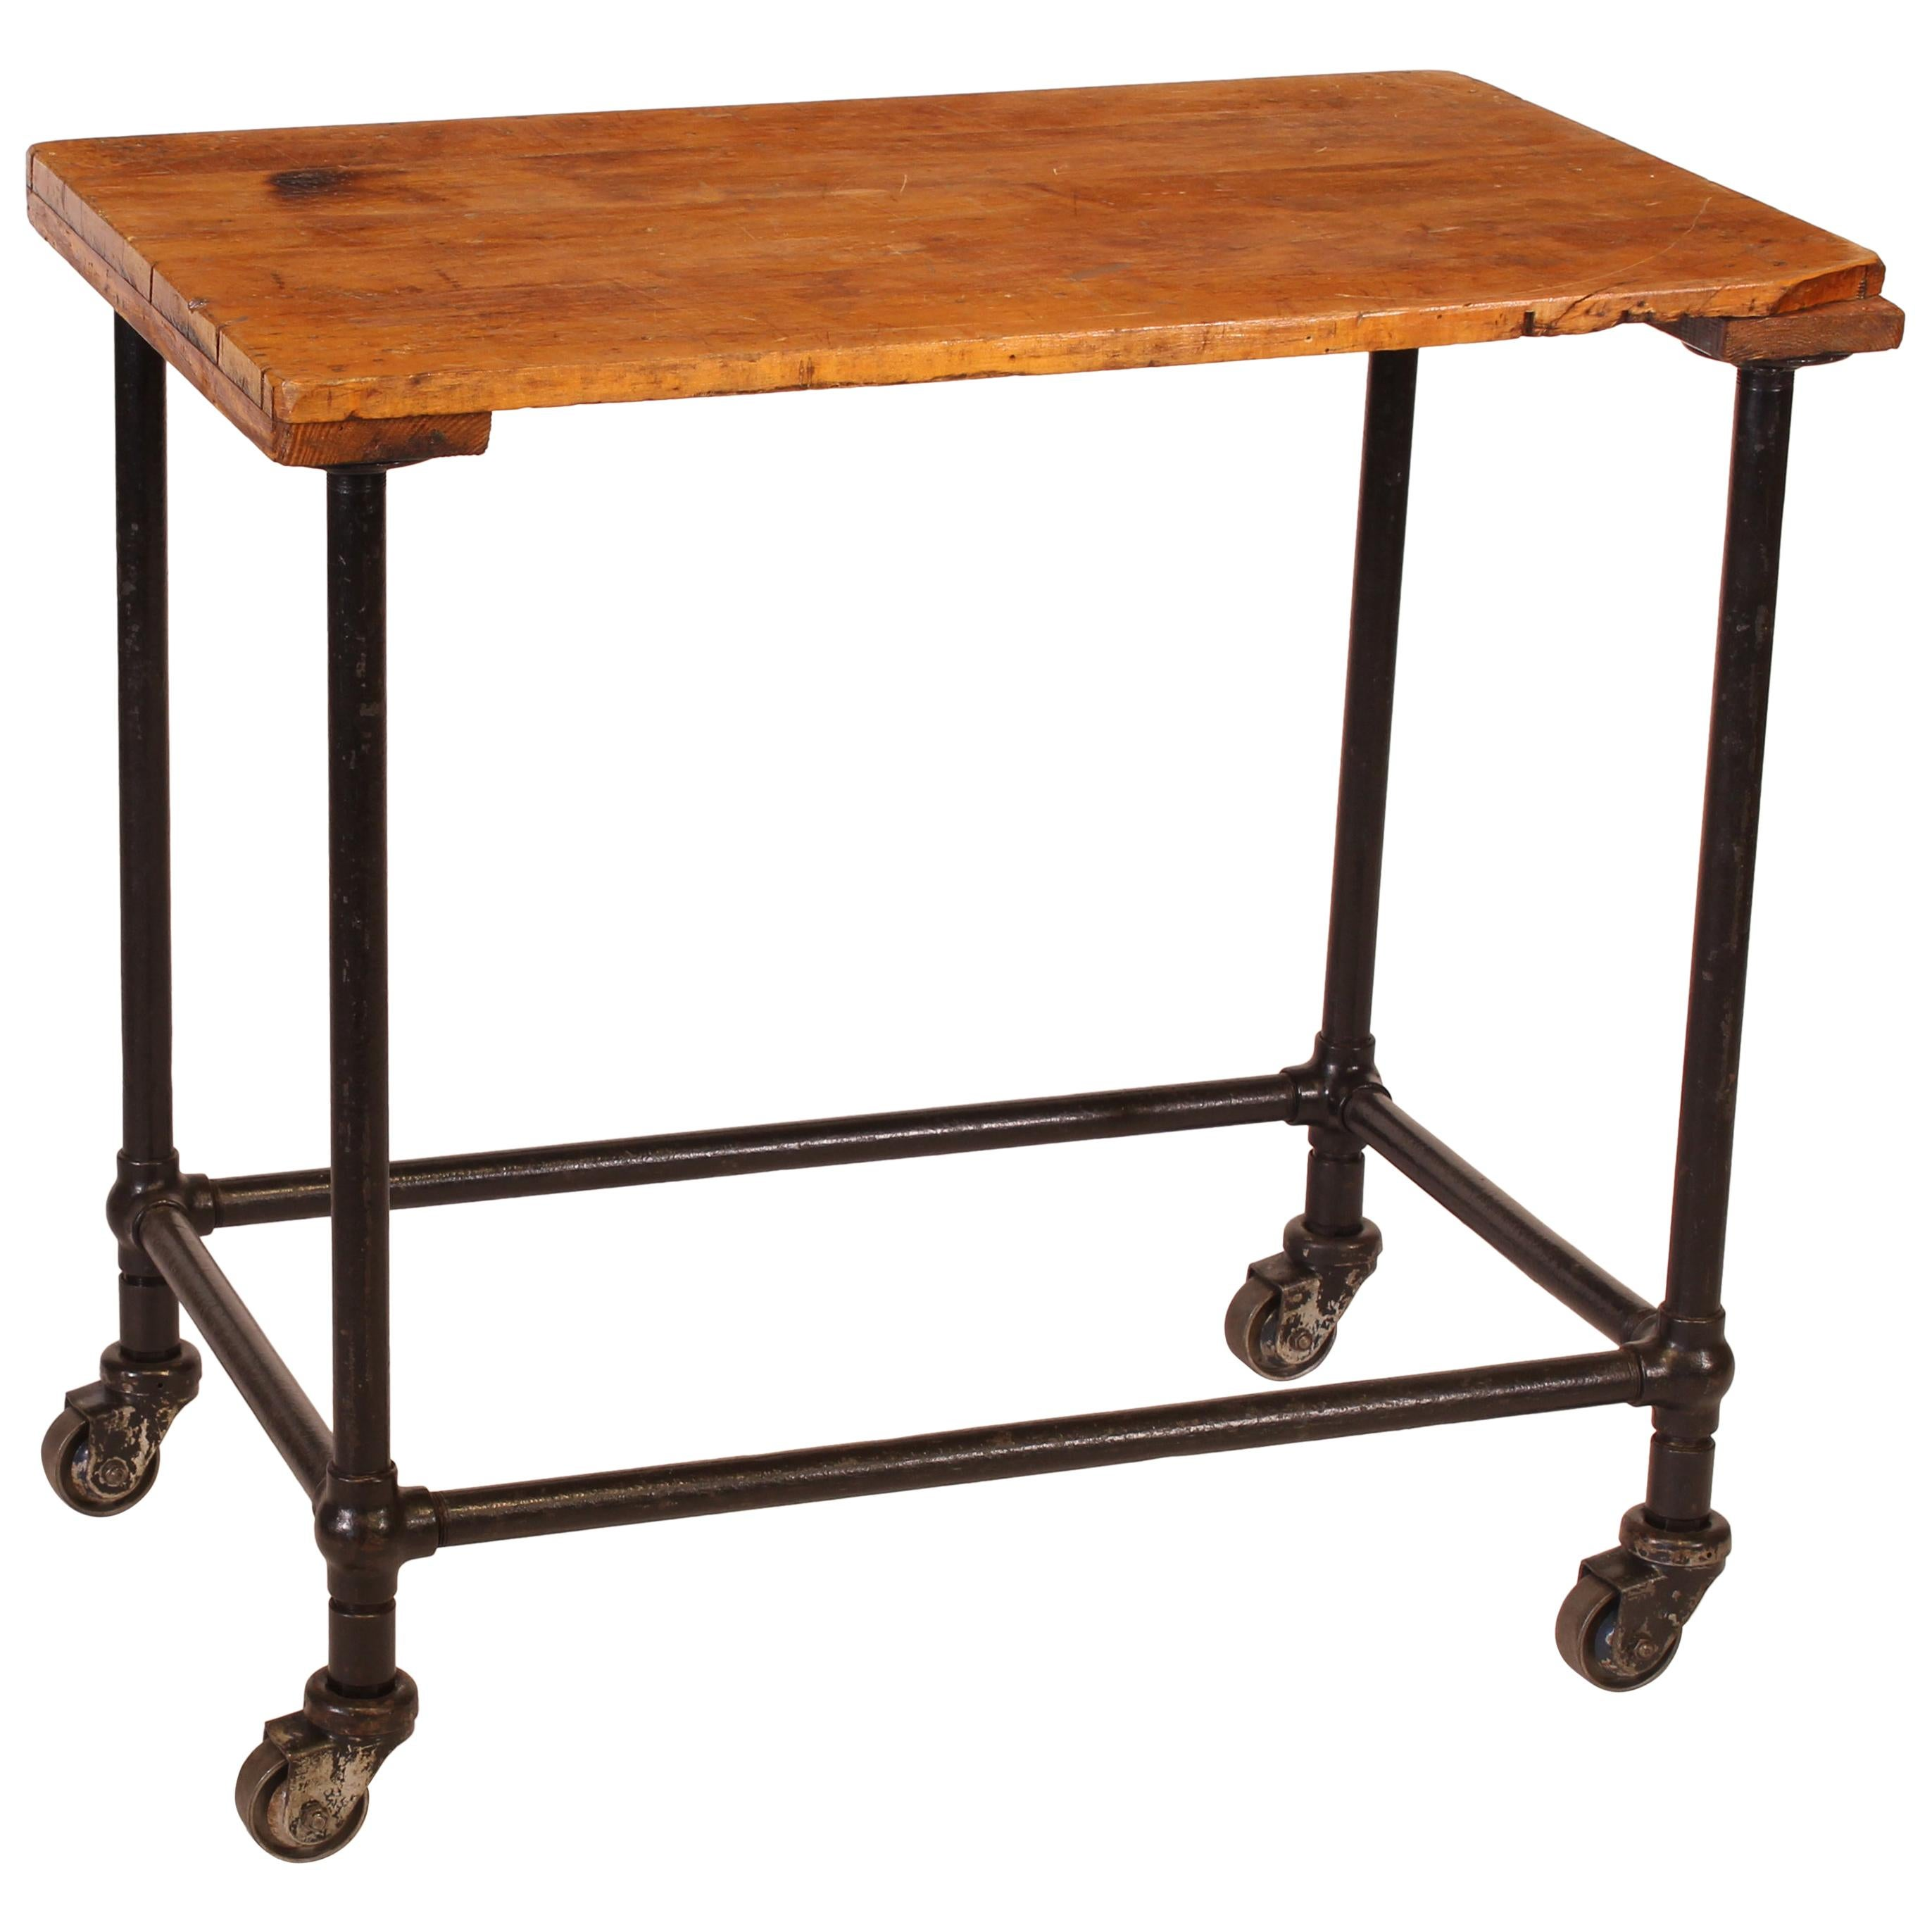 Authentic Vintage Industrial Rolling Printing Table or Cart